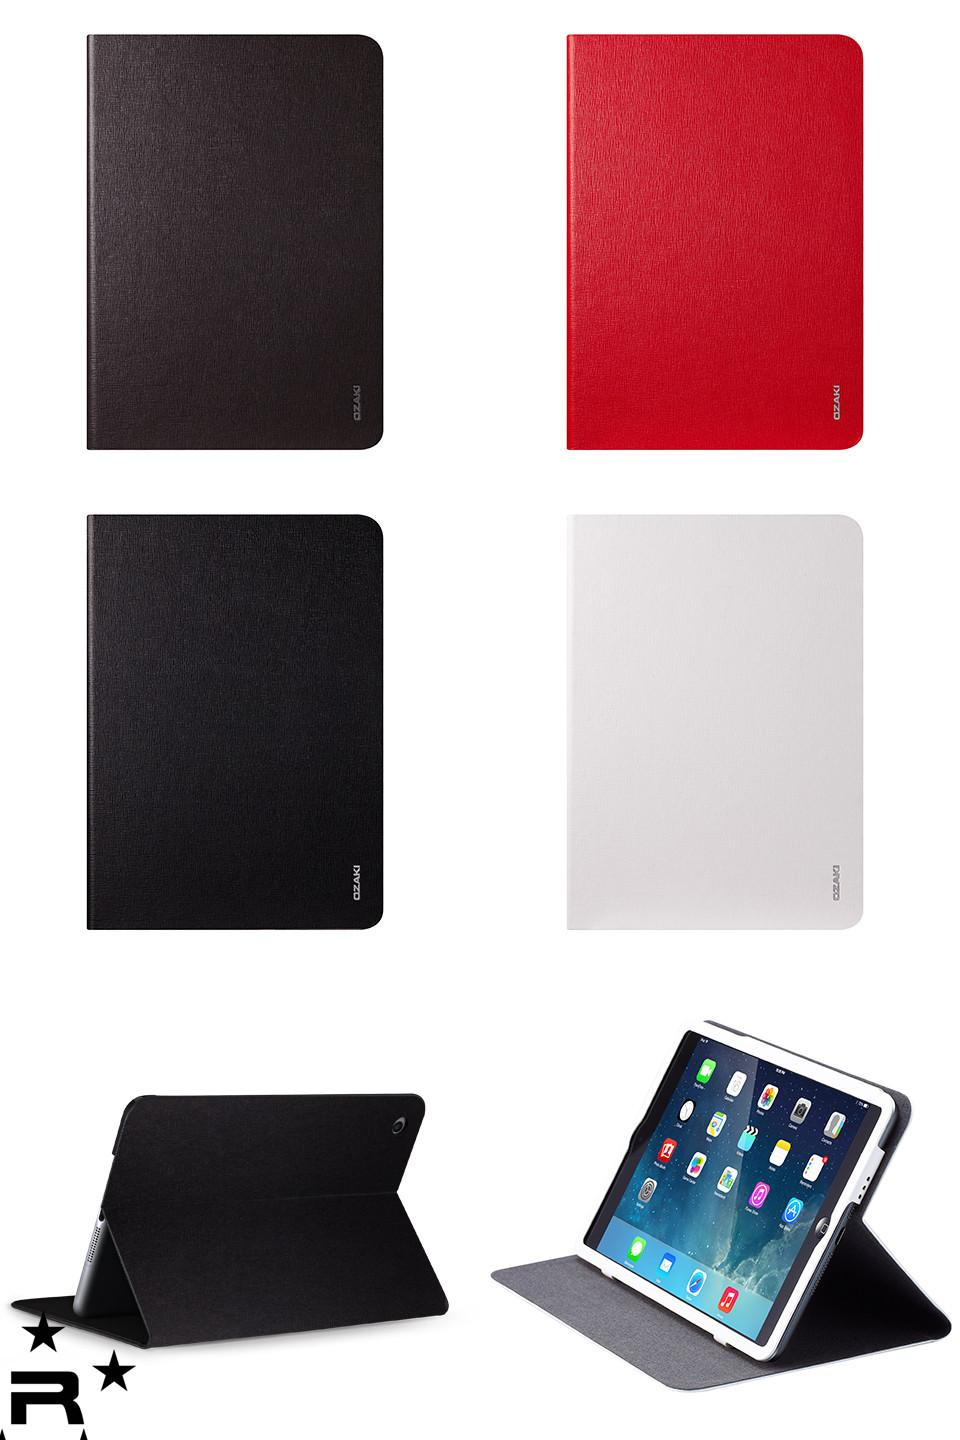 iPad Air Ozaki O!coat - Slim Mobility Adjustable Multi Angle Slim Case